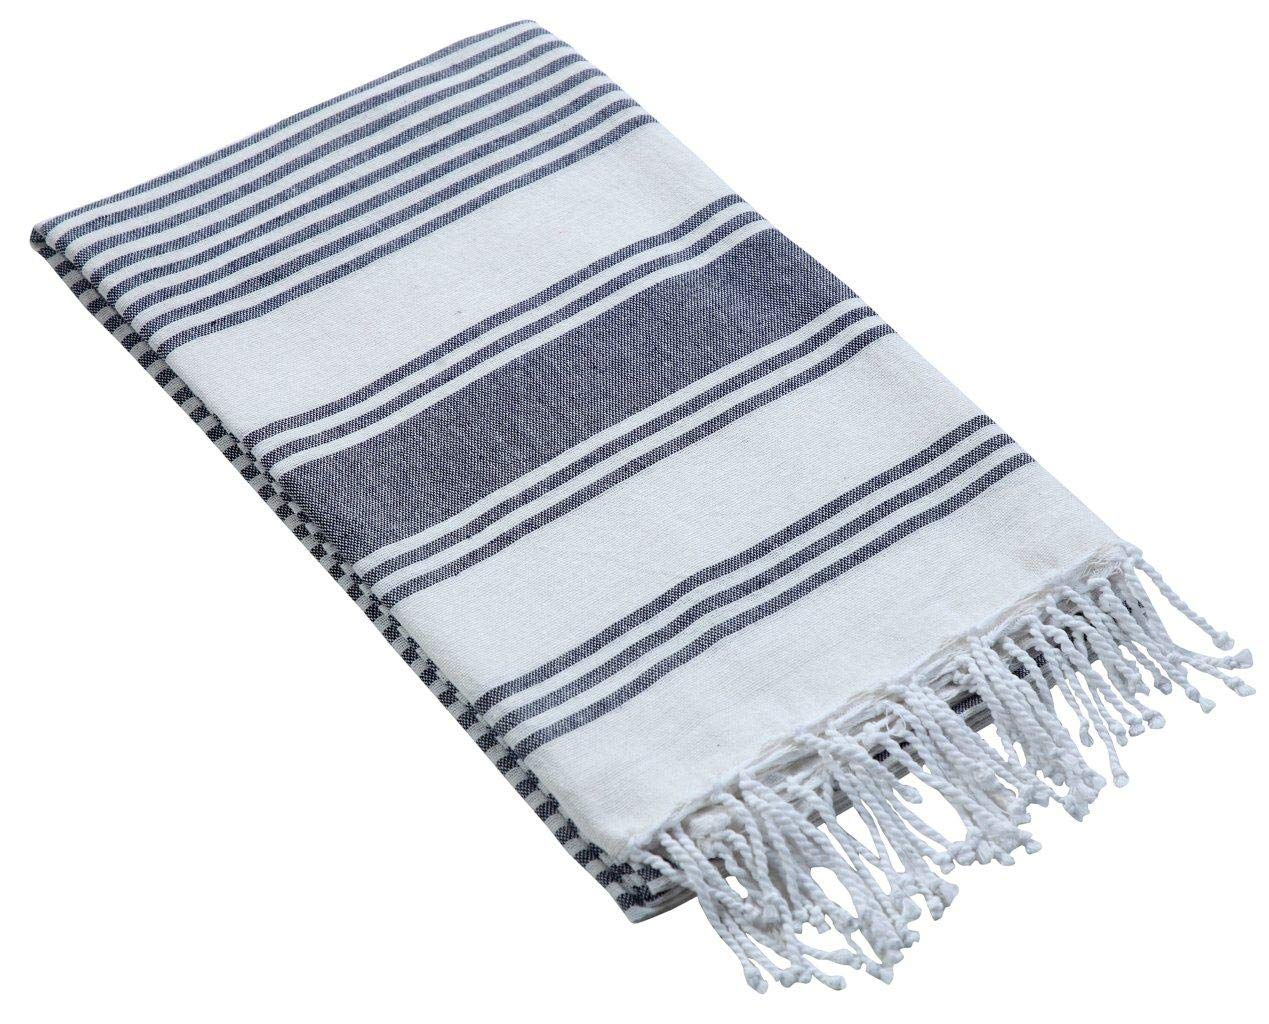 Thin Beach Towel in Cotton Fabric with Quick Dry Absorbent Quality,Peshtemal Beach Towel,Pool Blanket,Fouta Beach Towels,Gym Pool Blanket Fouta Towels,- Stripe Design 39x70 -Charcoal White.Set of 2